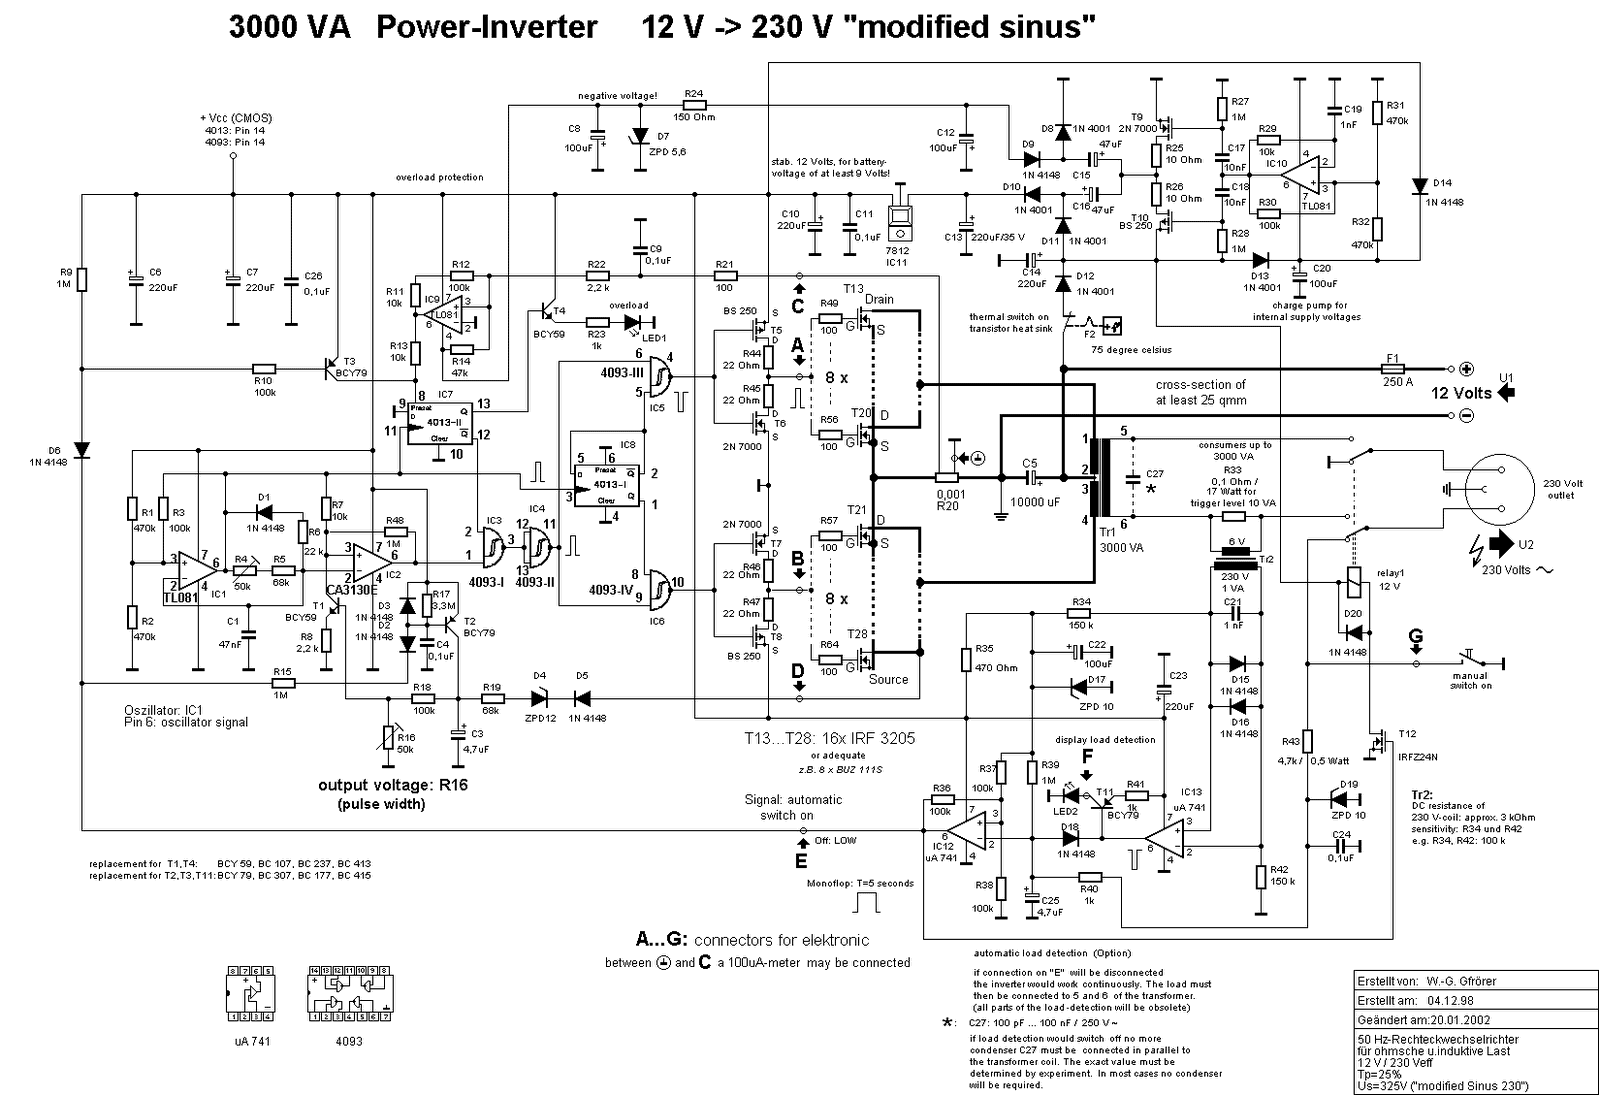 Printer Cable Wire Diagram likewise Electrical Wiring Drawing For House also Wiring Diagram Usb Hub as well Soho Ether  Switches as well M12 Ether  Bulkhead. on how to wire home ethernet